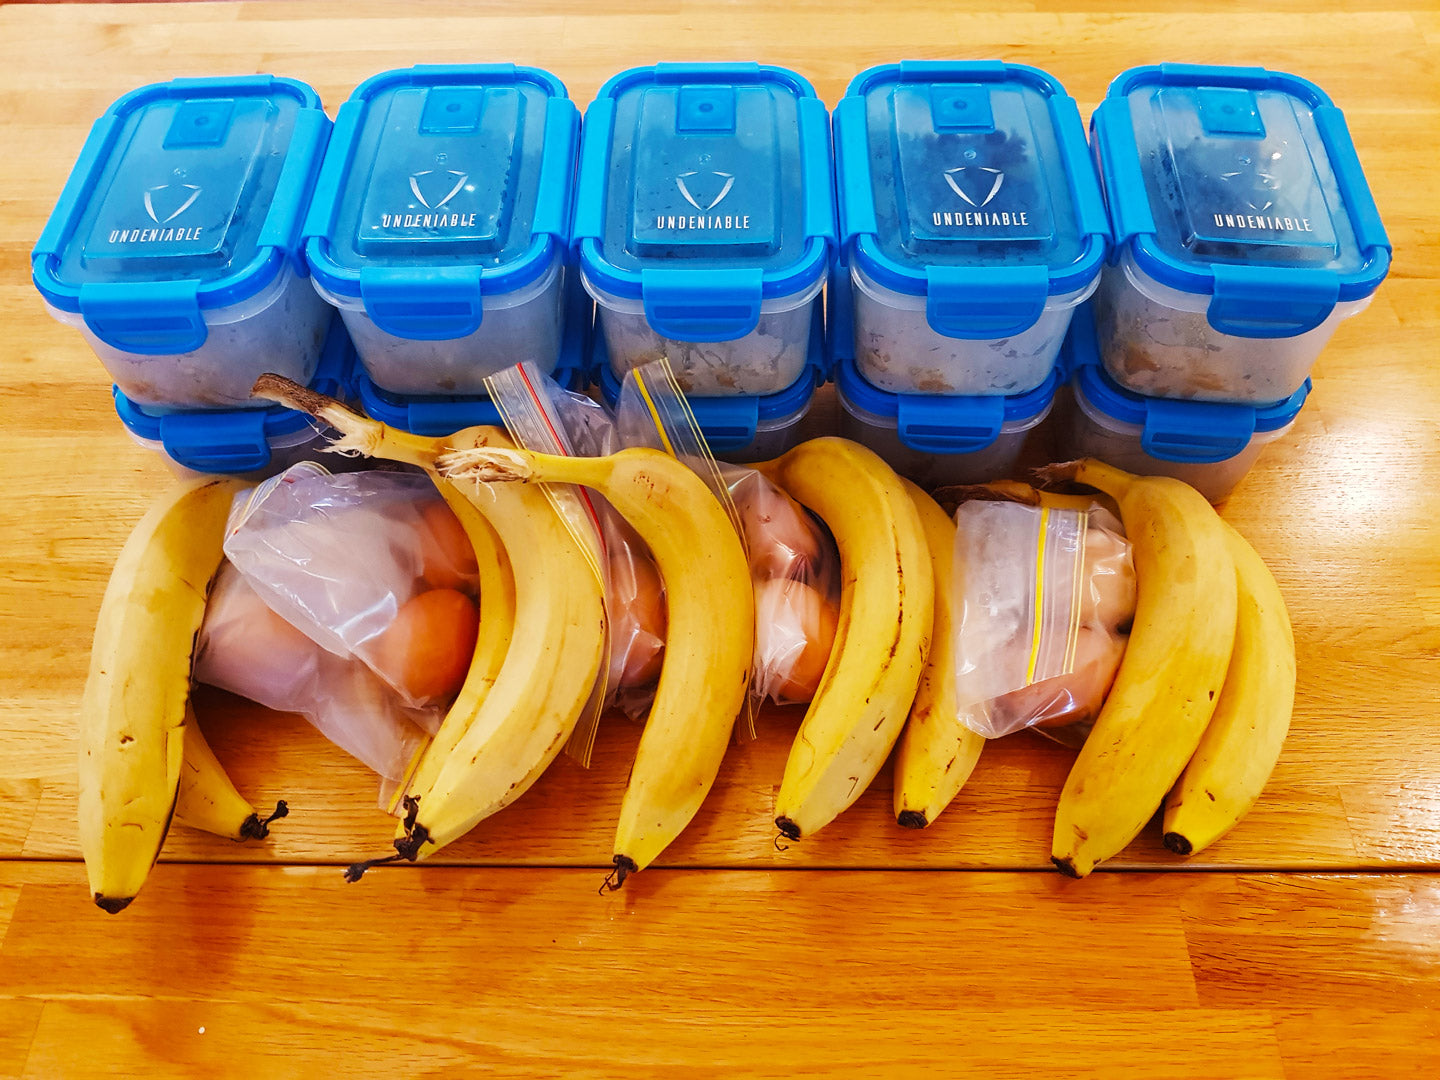 Meal Prep Sunday - 19th August 2018 - 1600 Calories & 6 Meals Per Day